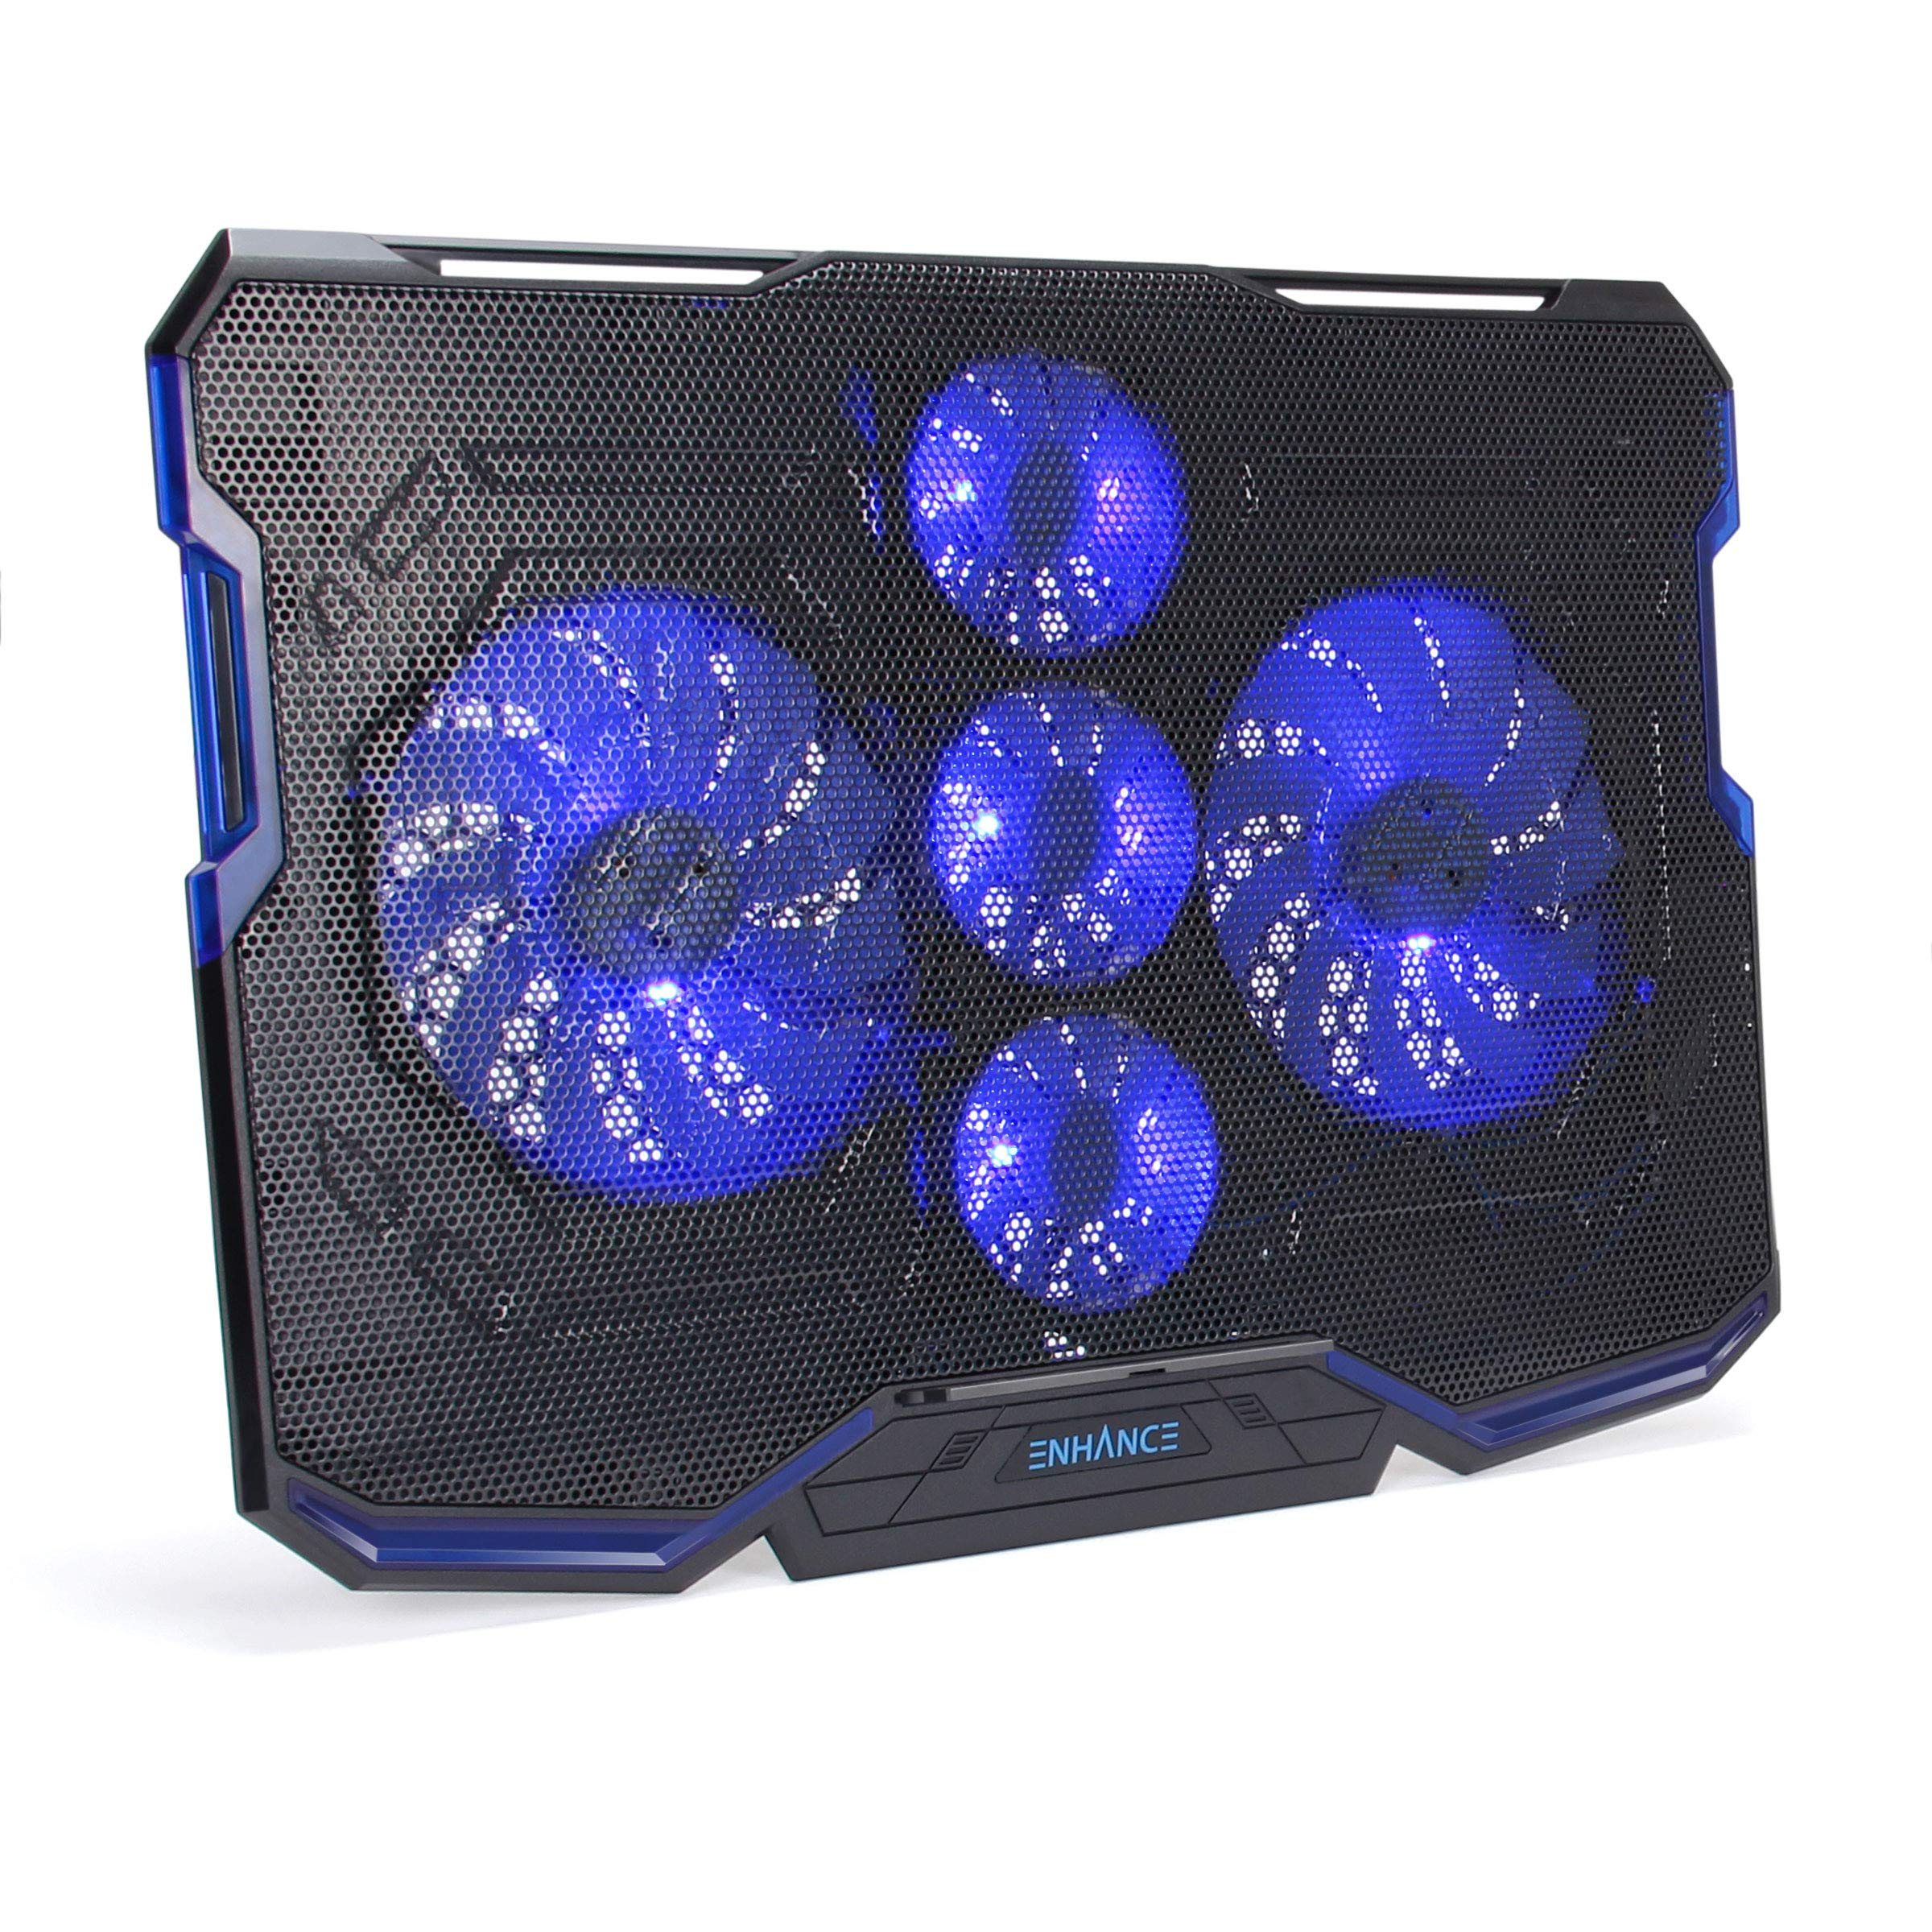 ENHANCE Cryogen Gaming Laptop Cooling Pad - Fits up to 17 inch Computer - Adjustable Laptop Cooling Stand with 5 Ultra Quiet Cooler Fans, 2 USB Ports and LED Lighting - Slim Portable Design 2500 RPM